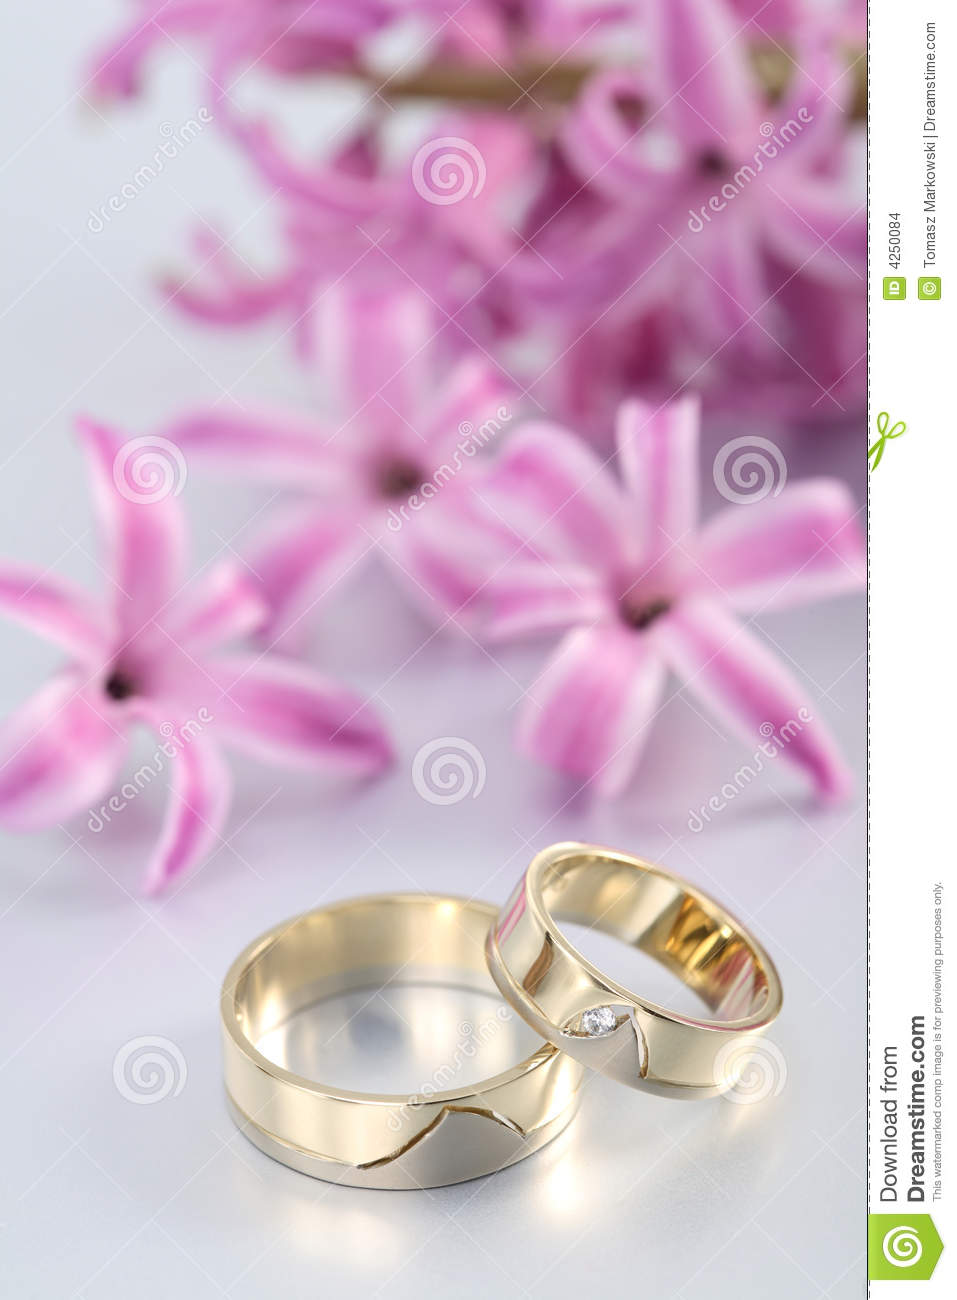 Image Result For Wedding Rings And Flowers Background